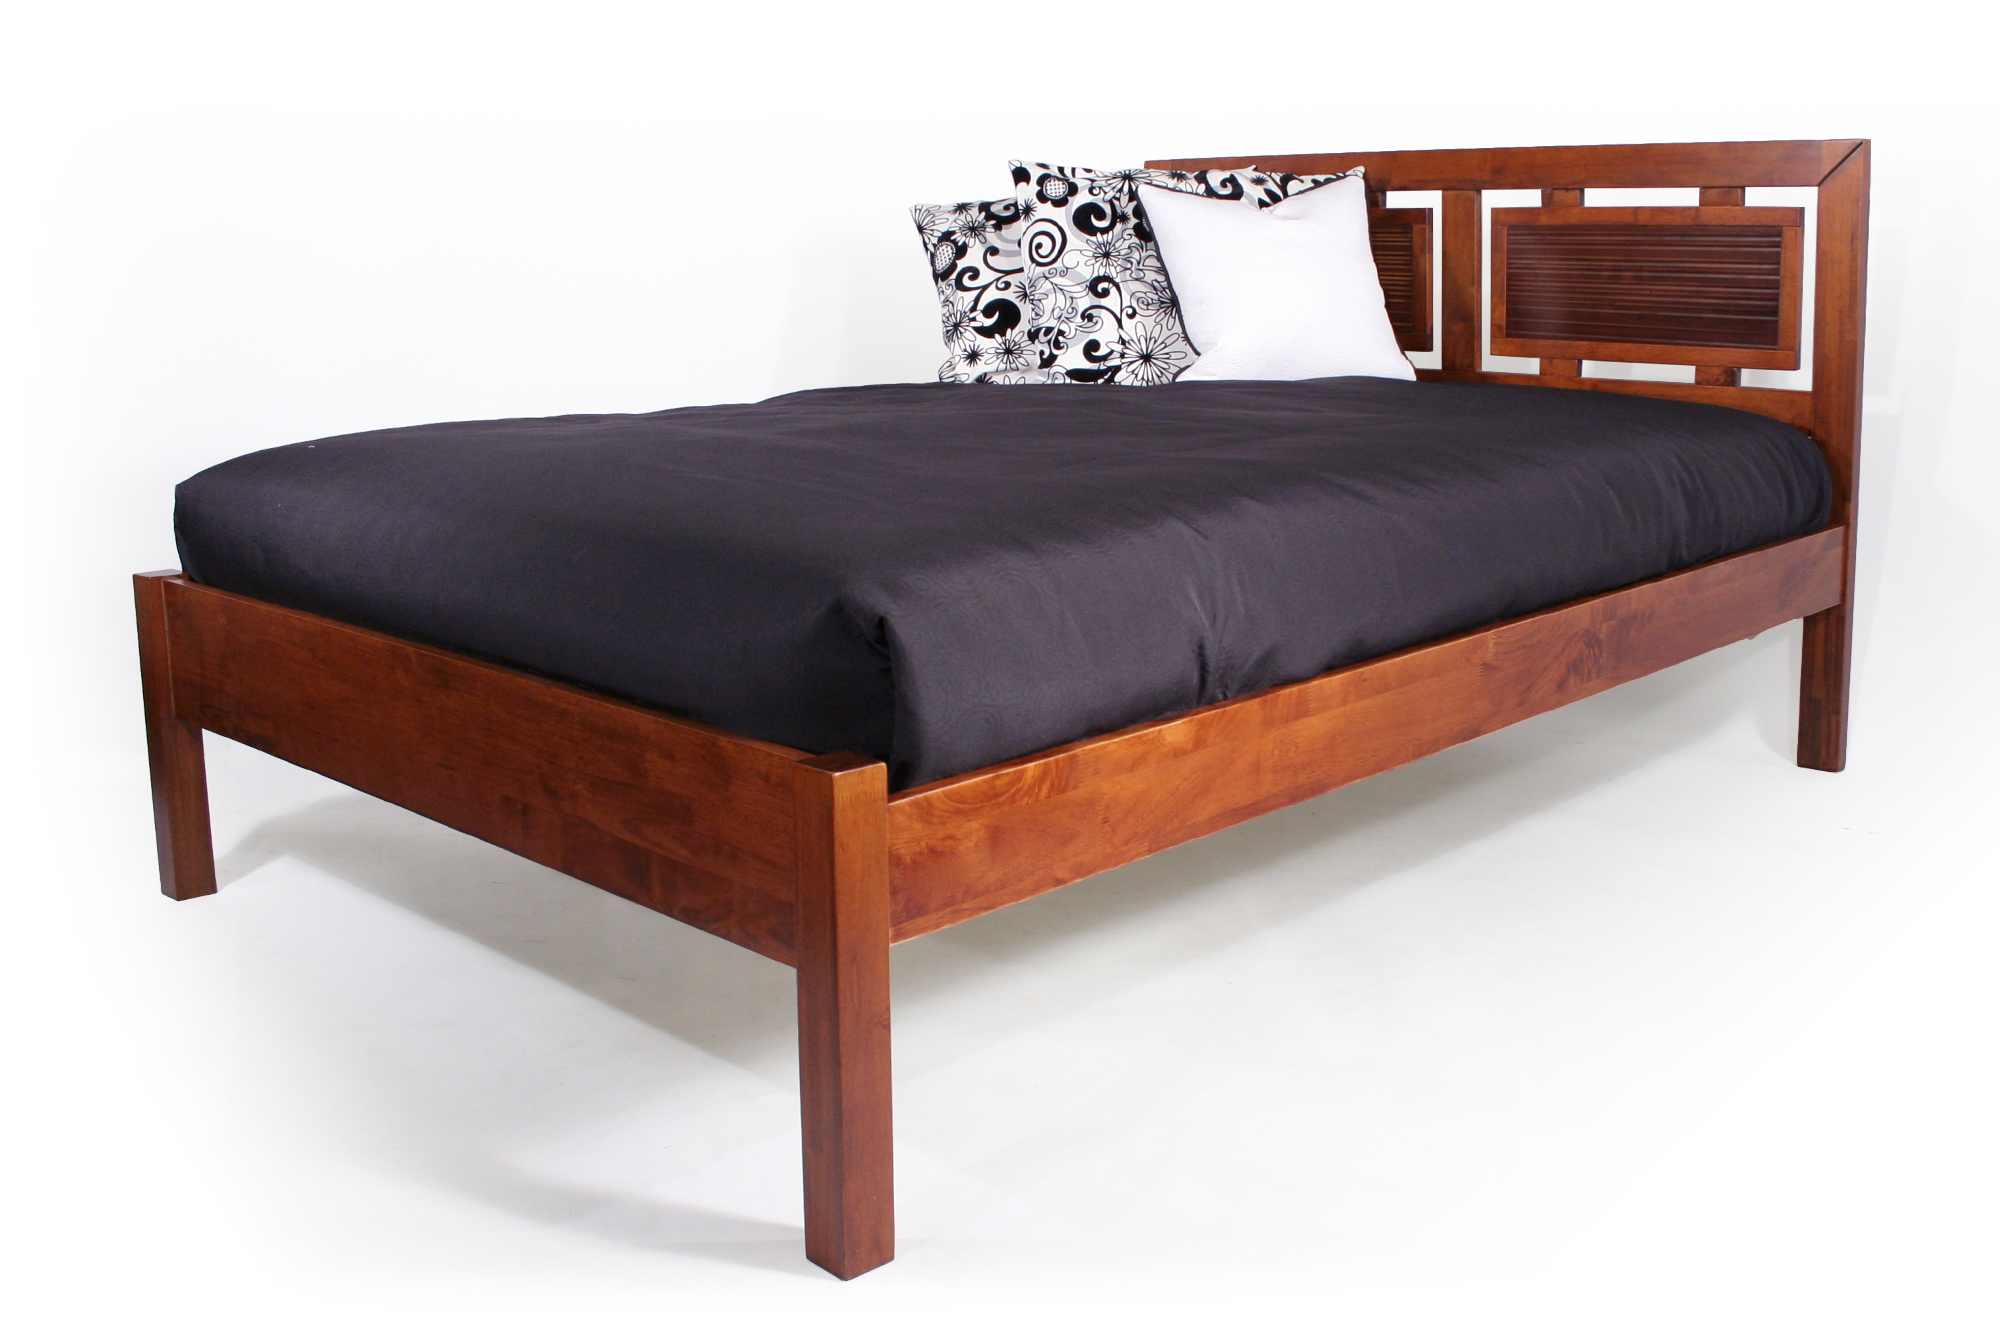 image futon included futons of jeffsbakery types atlanta basement mattress style with beds